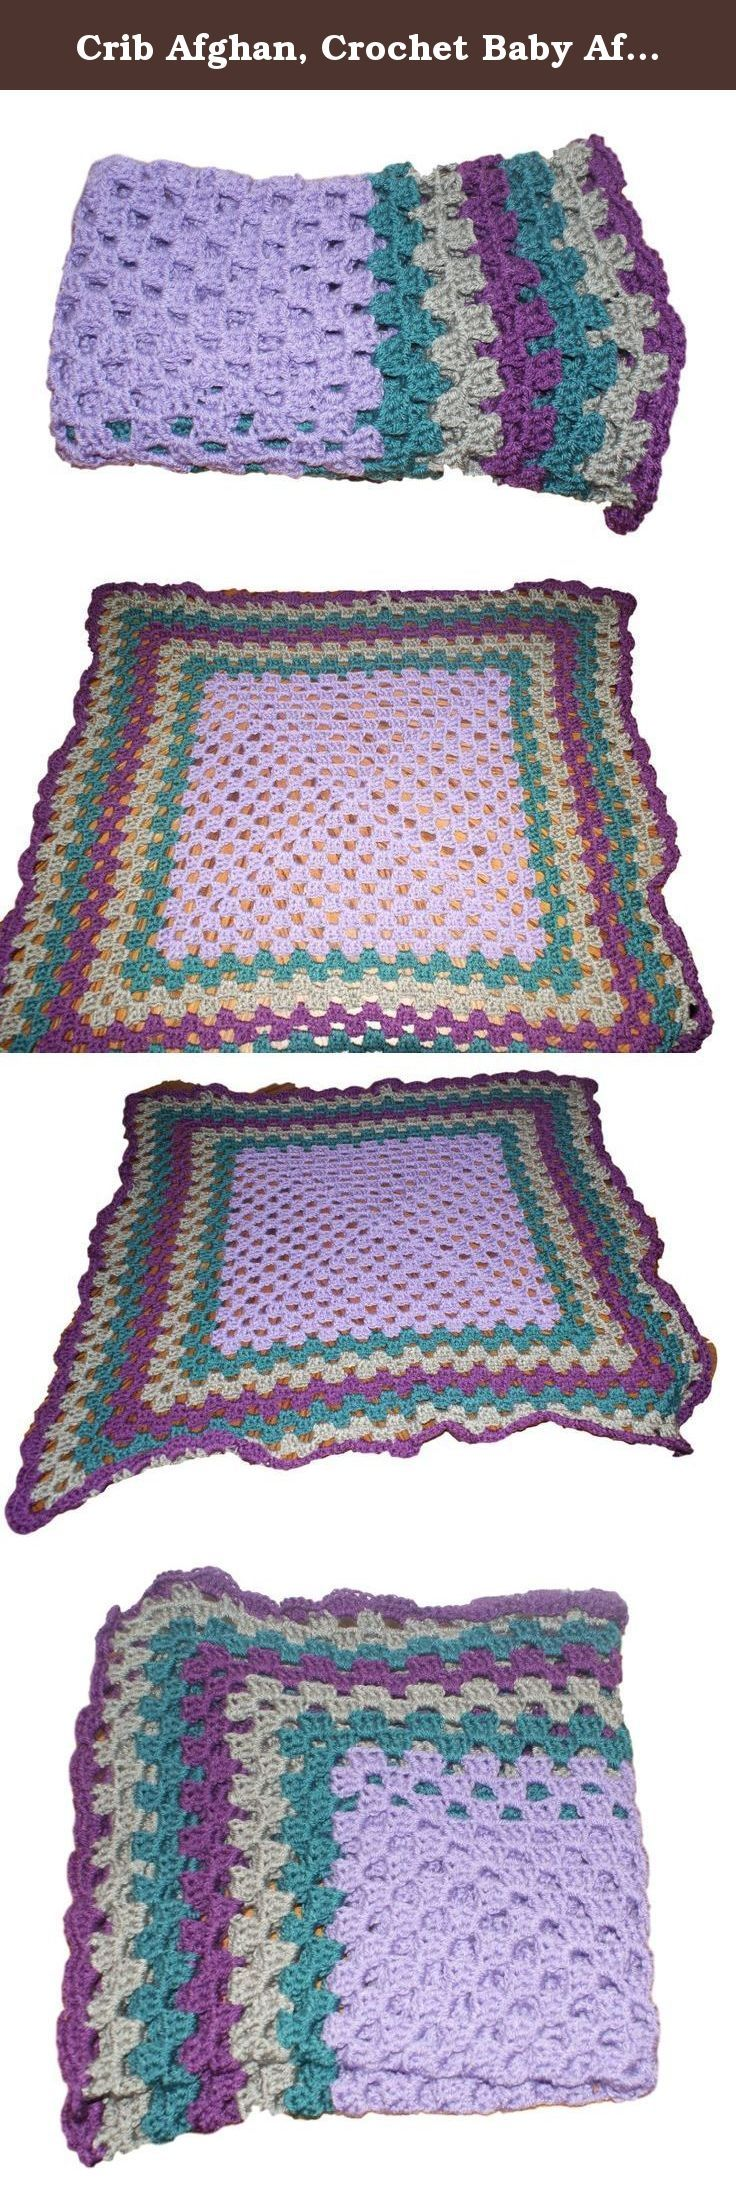 """Crib Afghan, Crochet Baby Afghan, Heirloom Blanket, Granny Afghan, Purple Baby Blanket, Granny Square Afghan, Heirloom Afghan, Baby Afghan. his soft and beautiful purple and teal, gray and mulberry baby blanket is perfect to bring newborn home in. The handmade crochet baby afghan measures 36""""x36"""". Great as a carriage blanket or car seat blanket. Wonderful for baby or toddler to snuggle with. What a beautiful blanket for an heirloom! Crocheted out of ultra soft yarn in Amethyst, Gray, Teal..."""